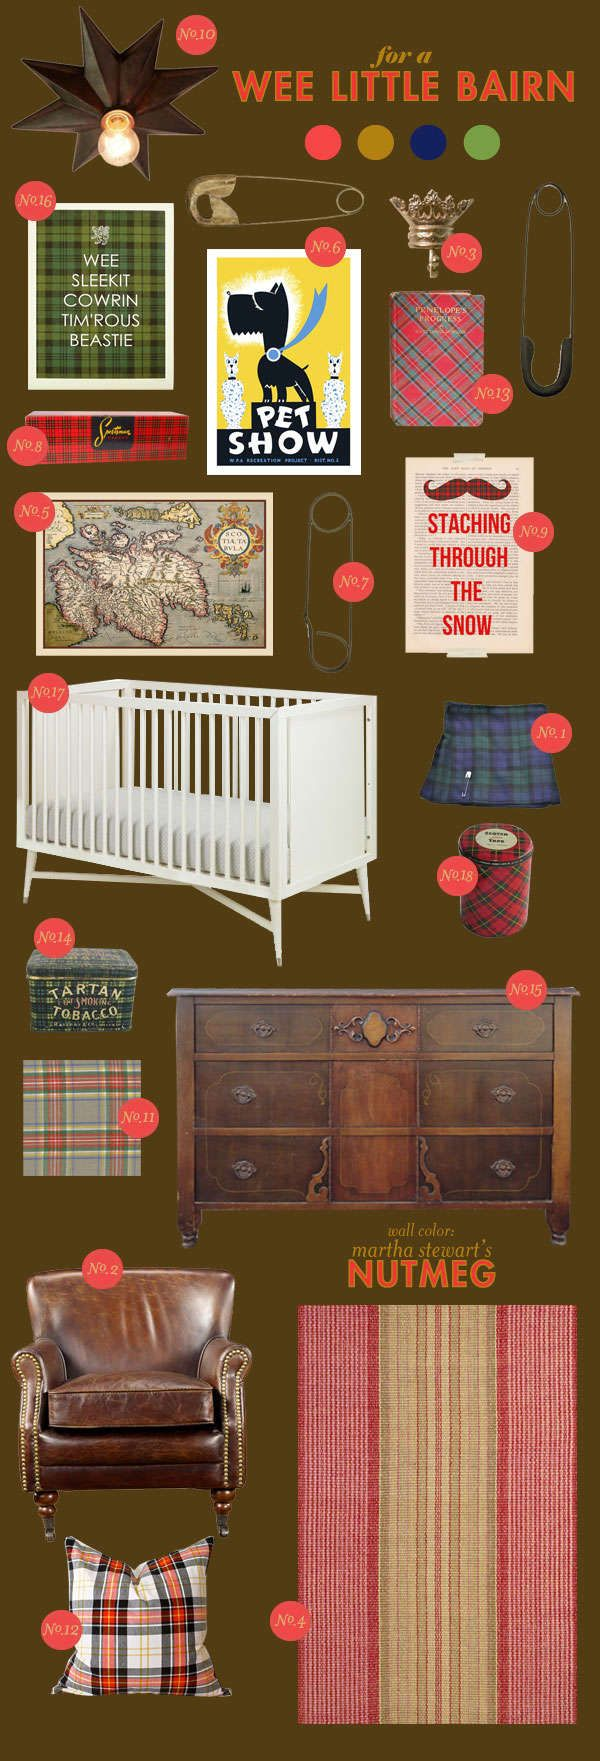 126 best Baby images on Pinterest | Nursery ideas, Baby bedroom and ...